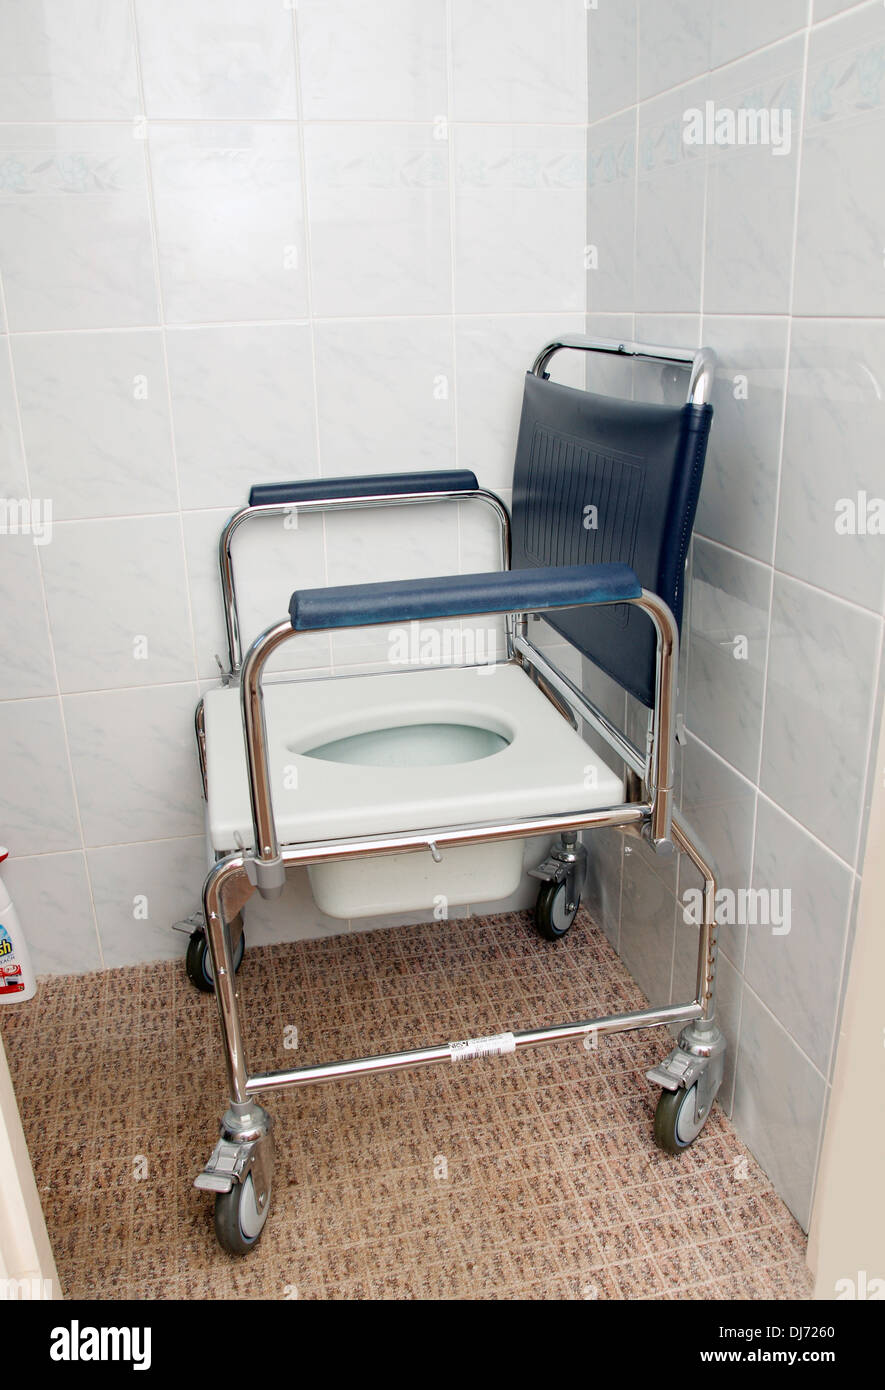 A Commode for a disabled person with wheels used for toileting & in ...